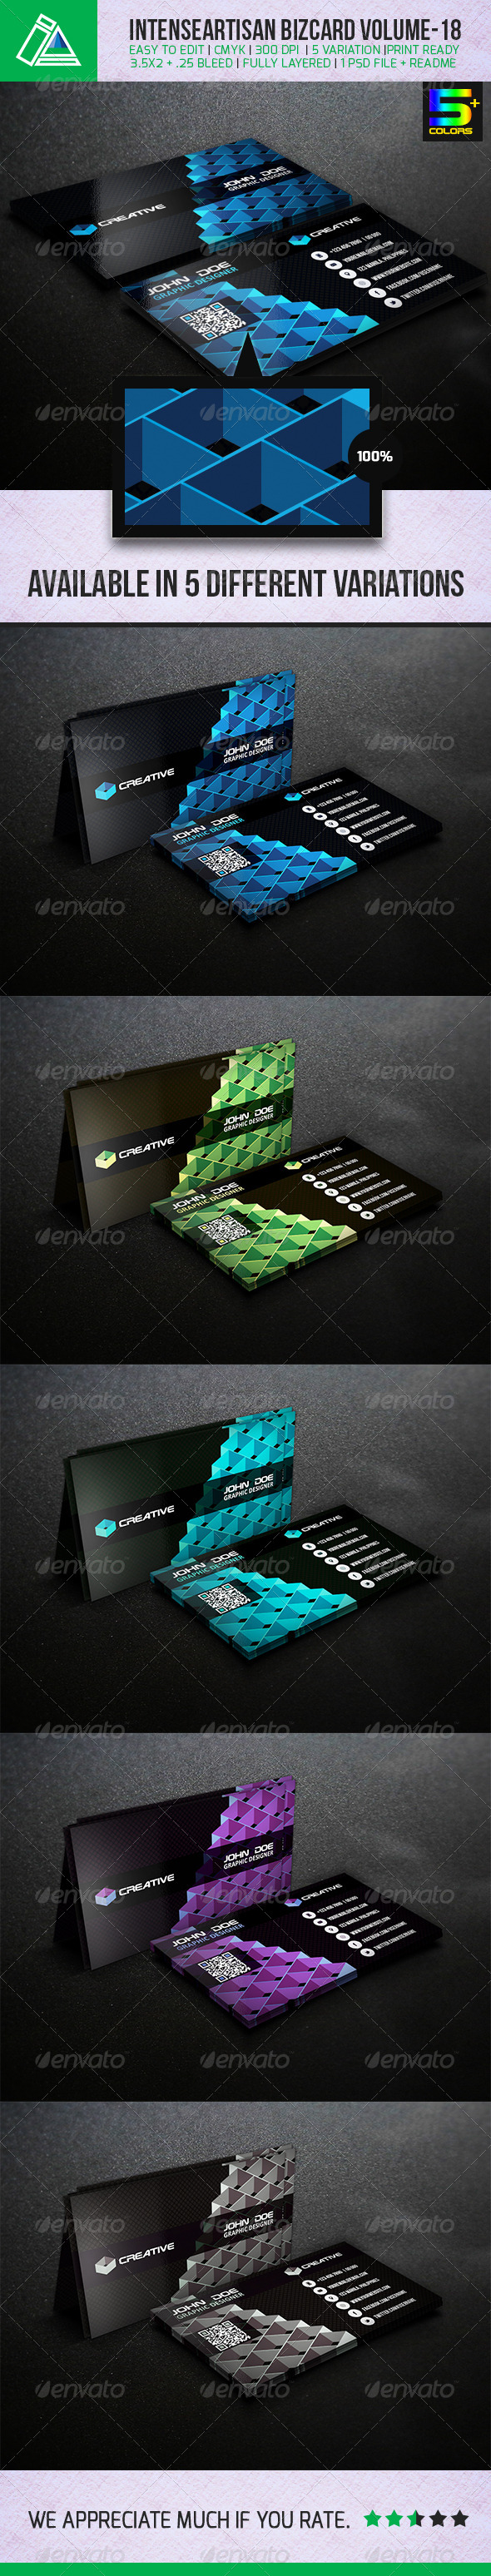 IntenseArtisan Creative Business Card Vol-18 - Creative Business Cards